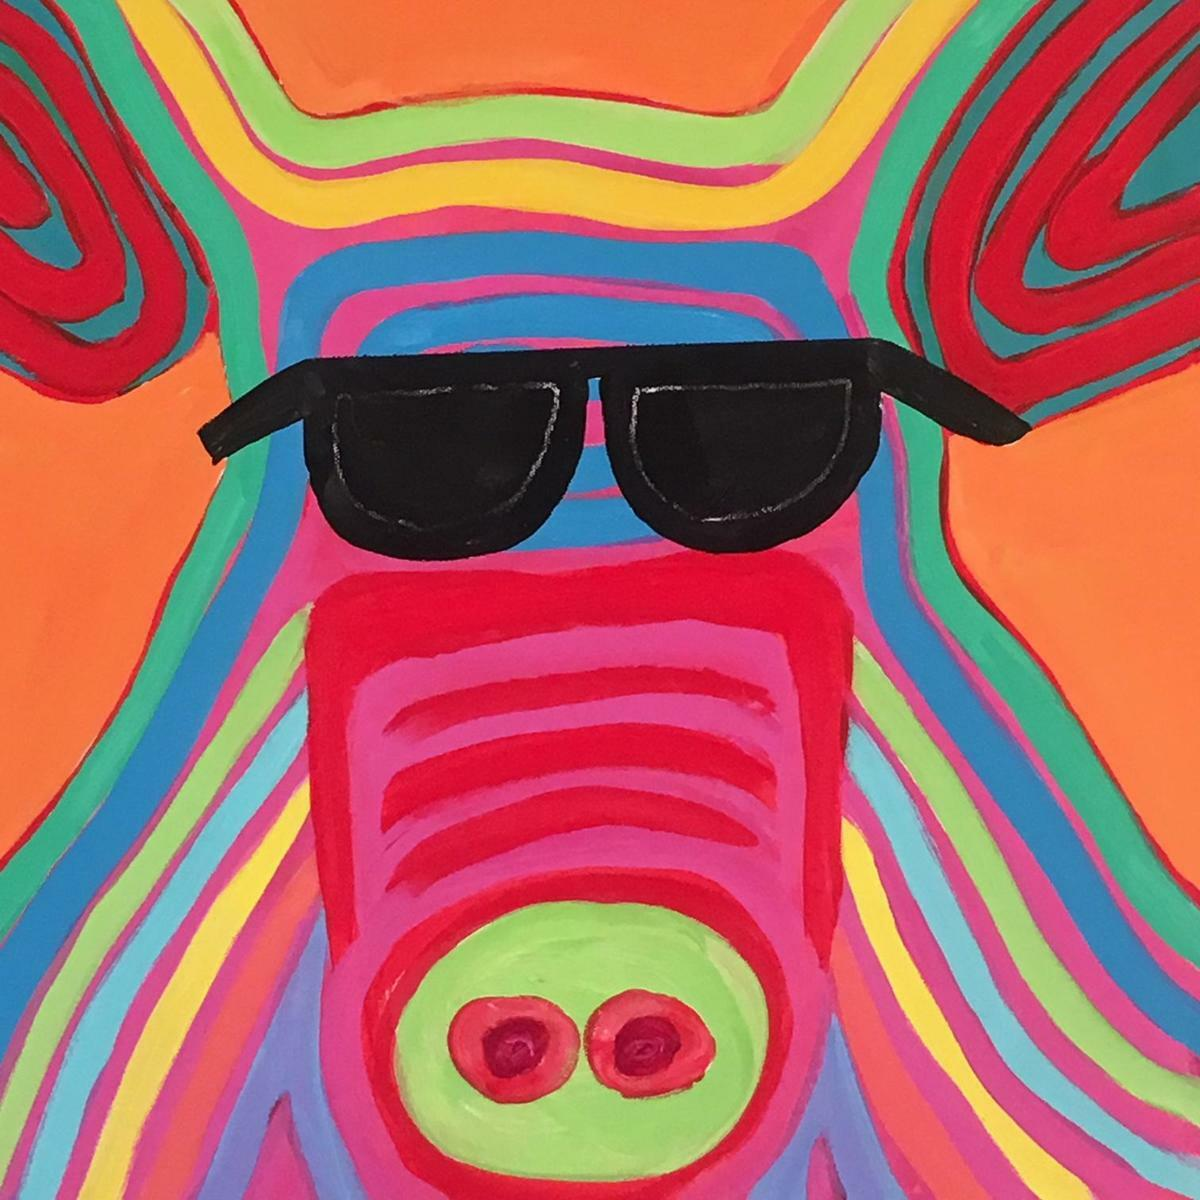 Psychedelic Pig 20x20 (large view)